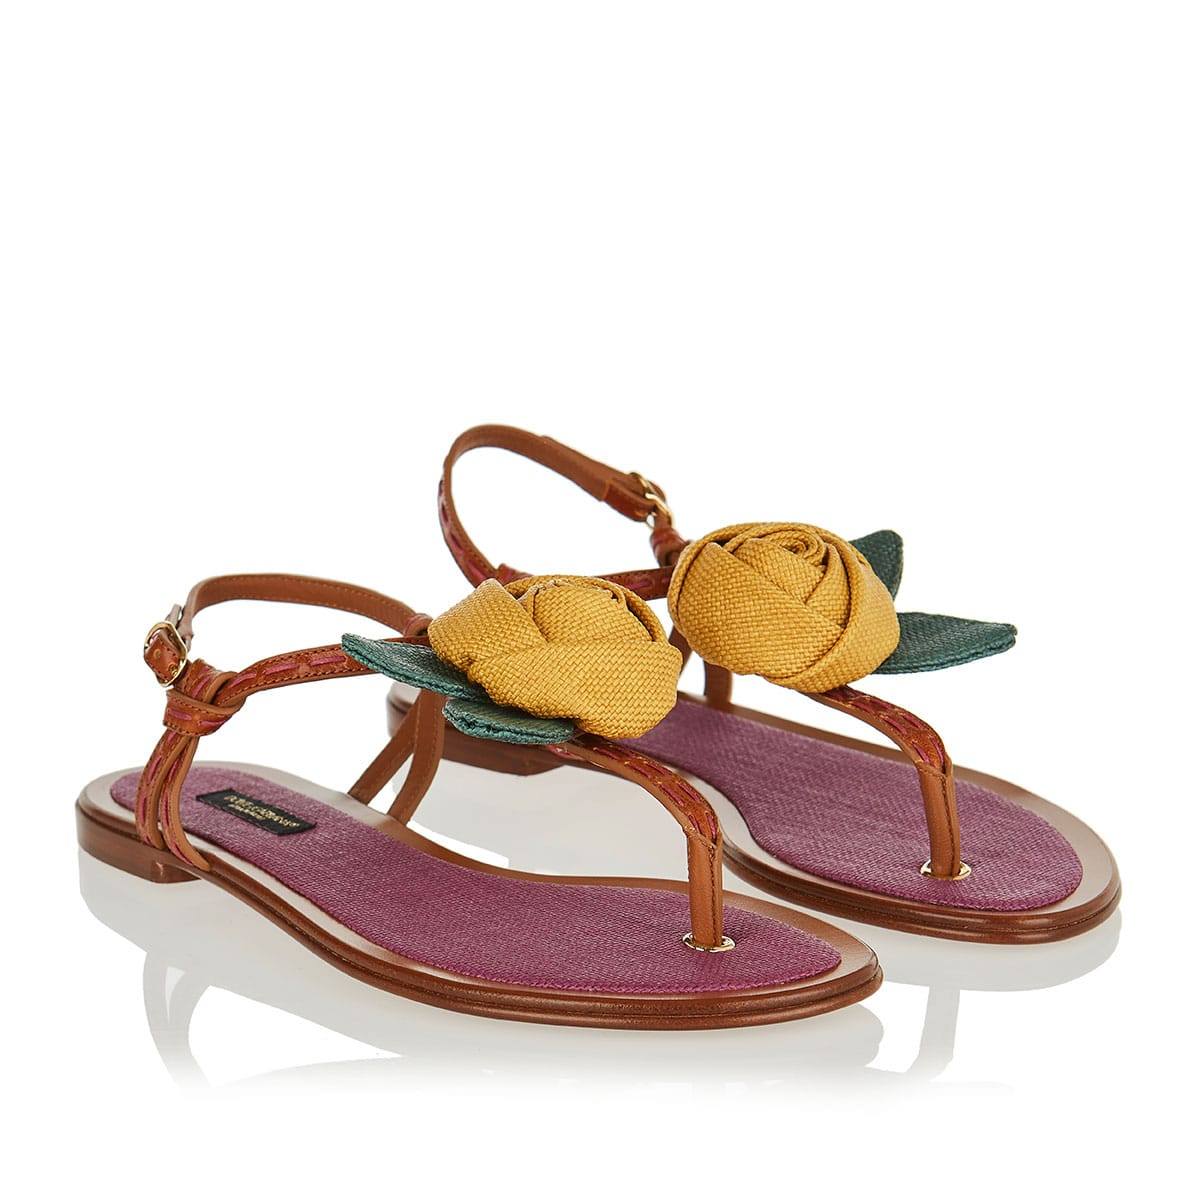 Flower appliqué flat sandals